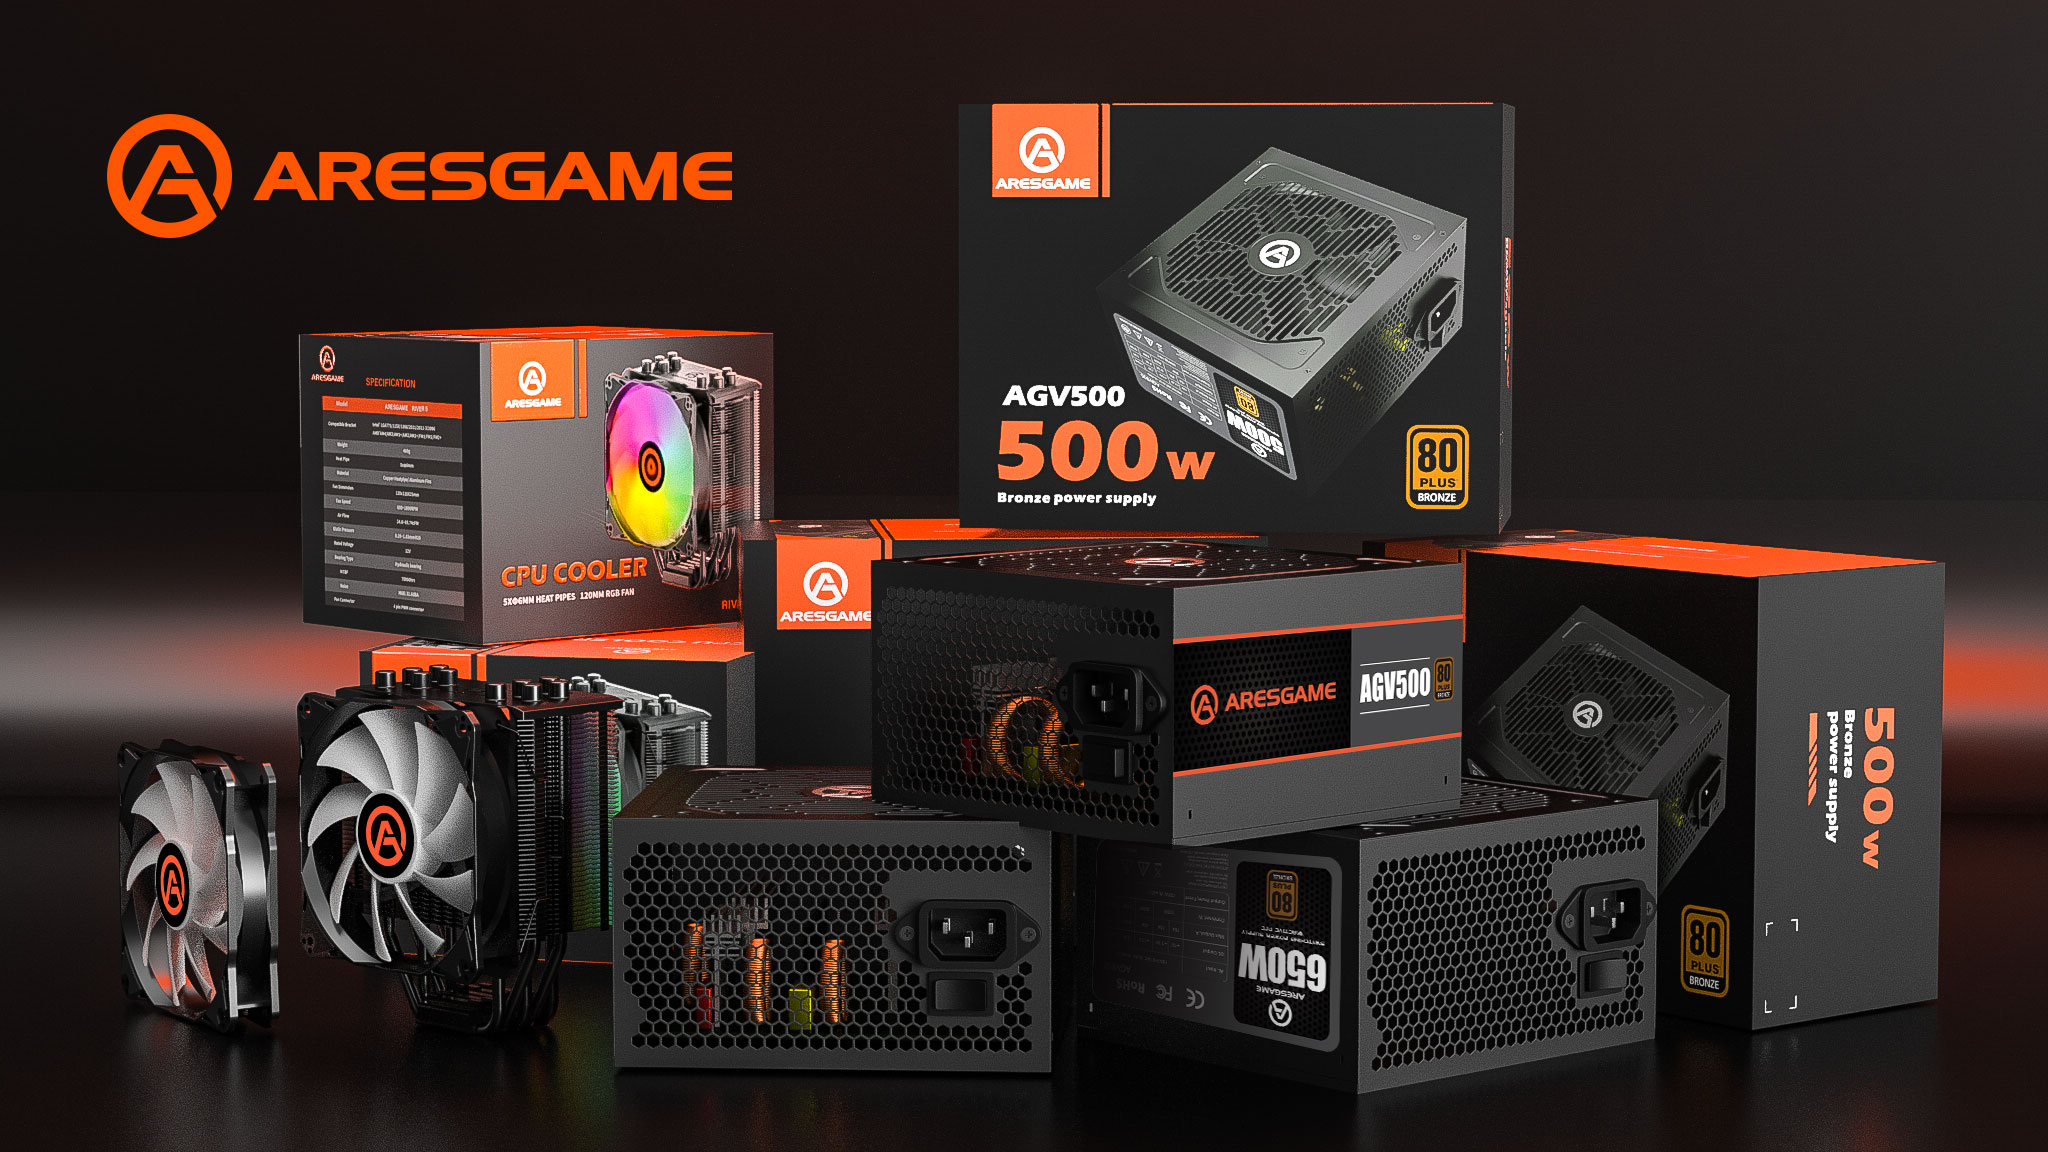 ARESGAME Presents High-Quality Power Supply Units Designed With Best Technology At Affordable Price To Provides Optimal Performance